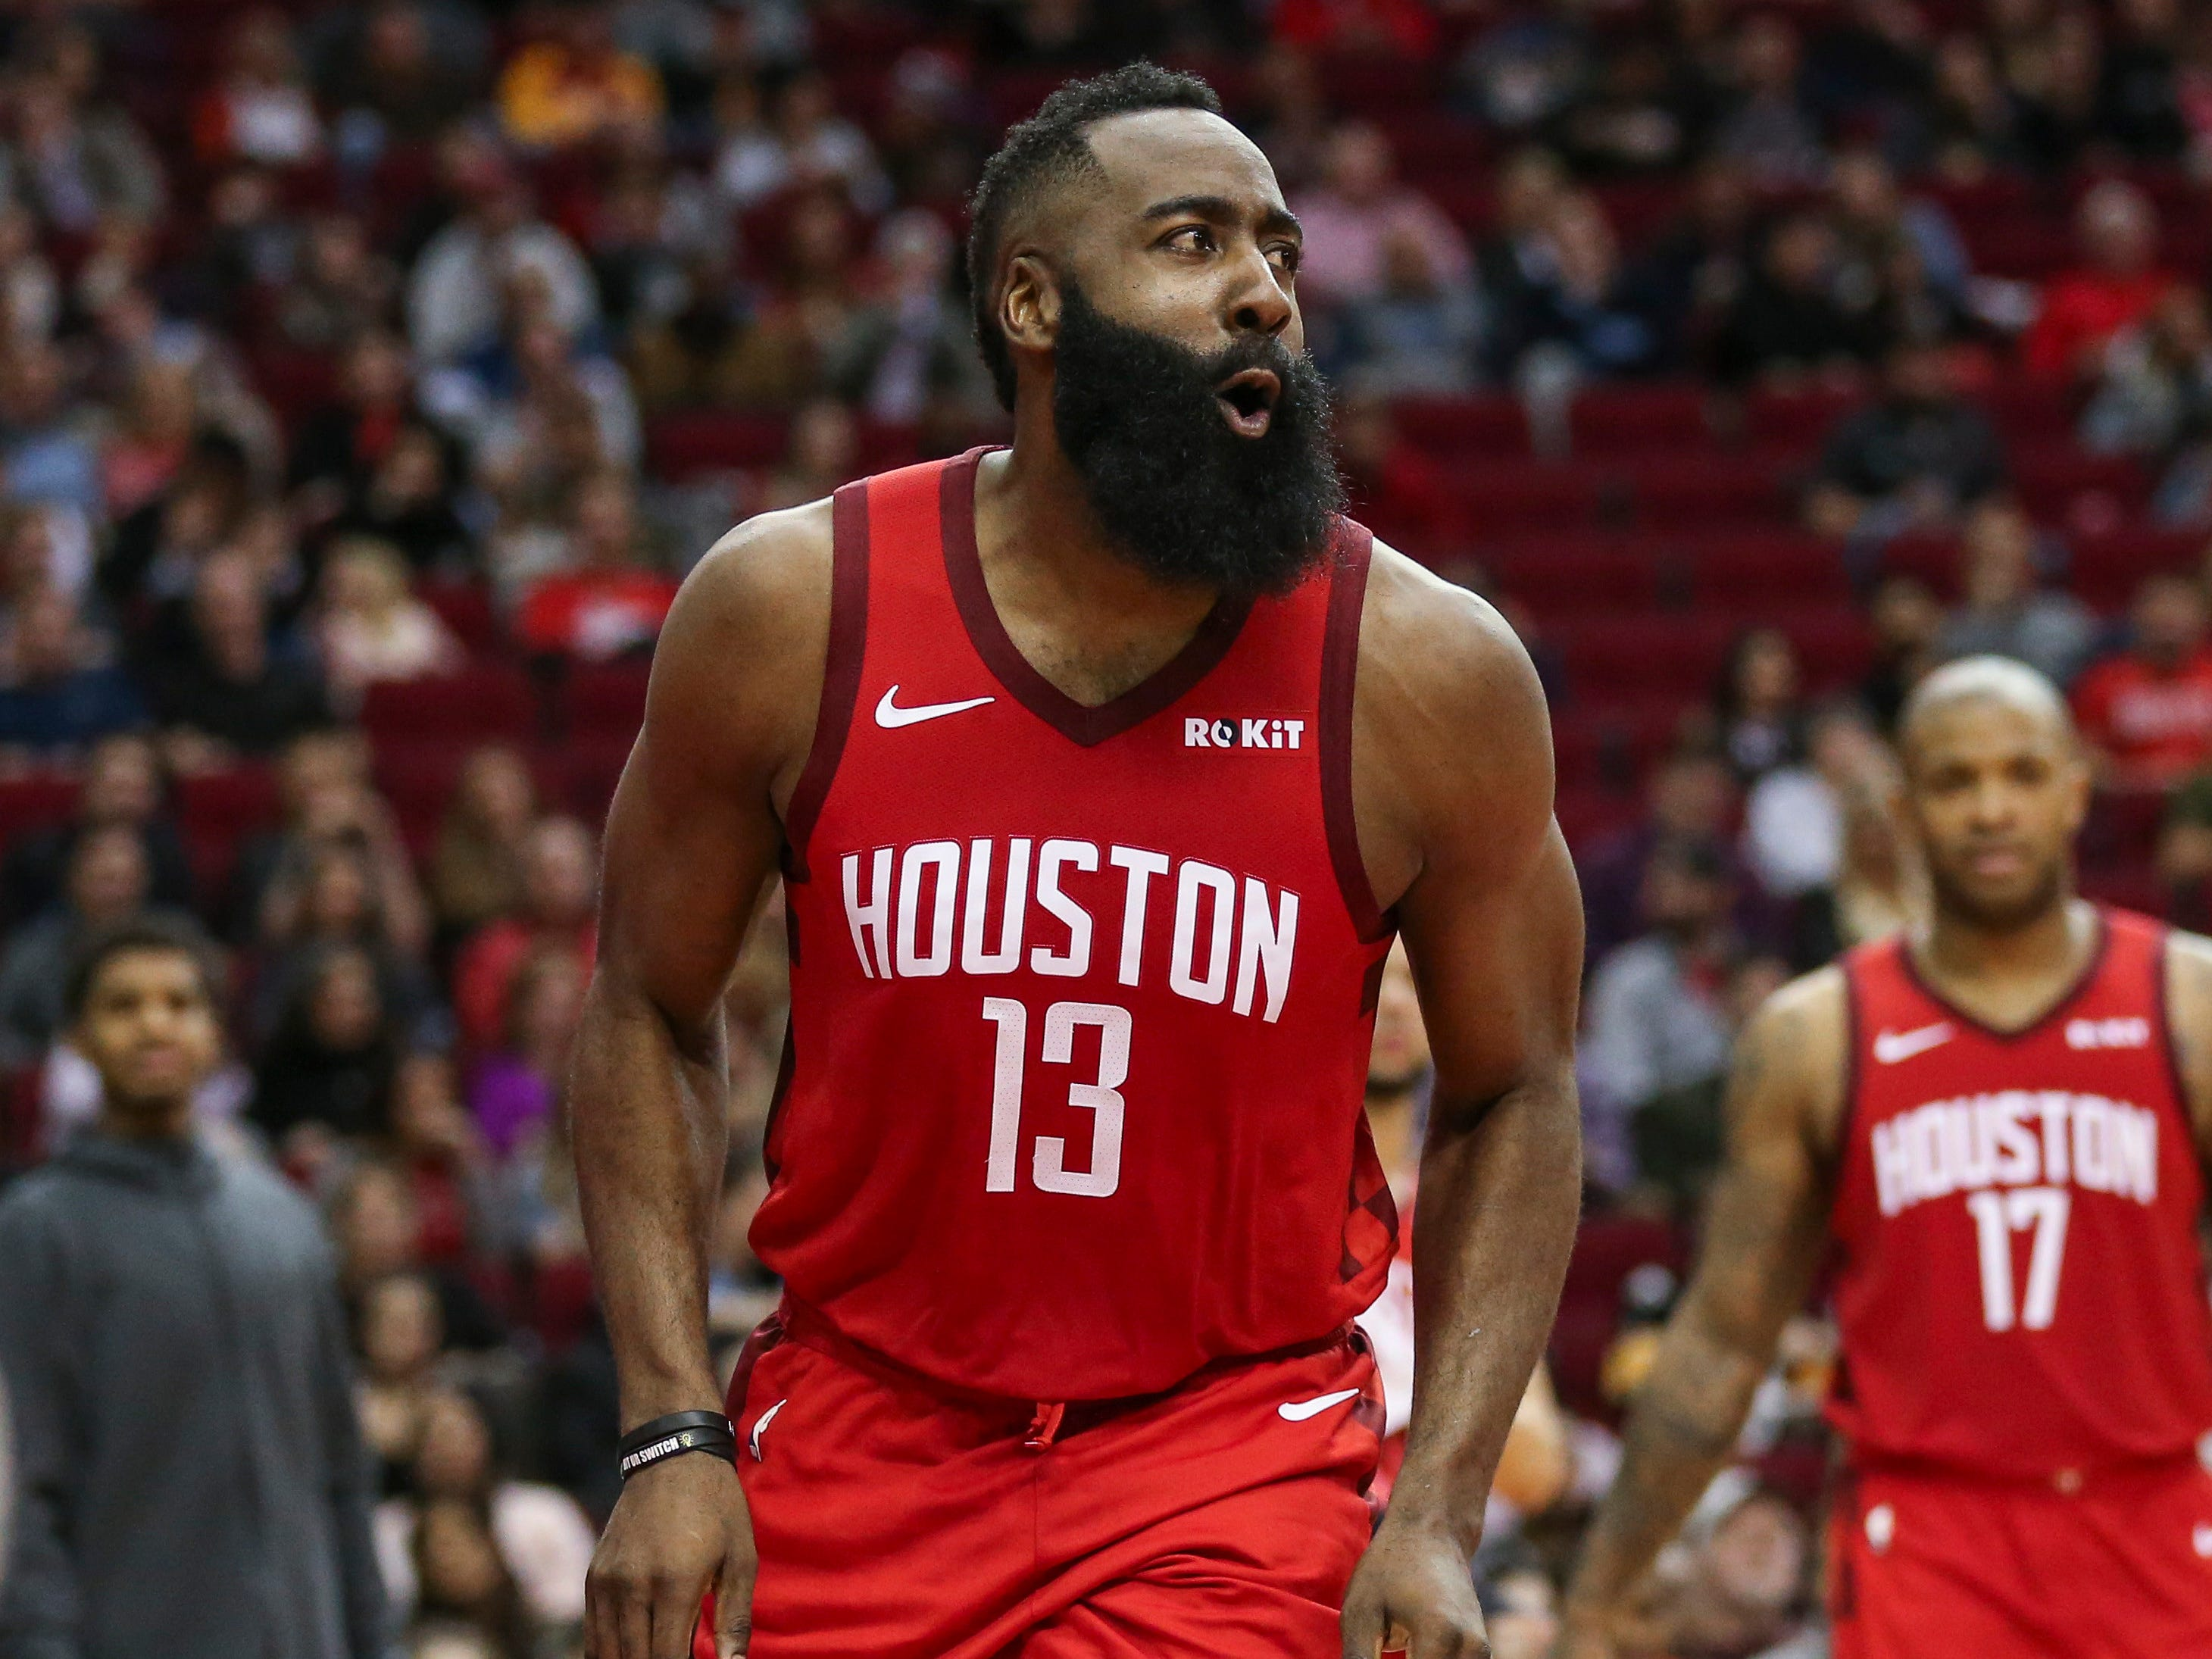 39. James Harden, Rockets (Dec. 31): 43 points, 10 rebounds, 13 assists in 113-101 win over Grizzlies (fourth of season).